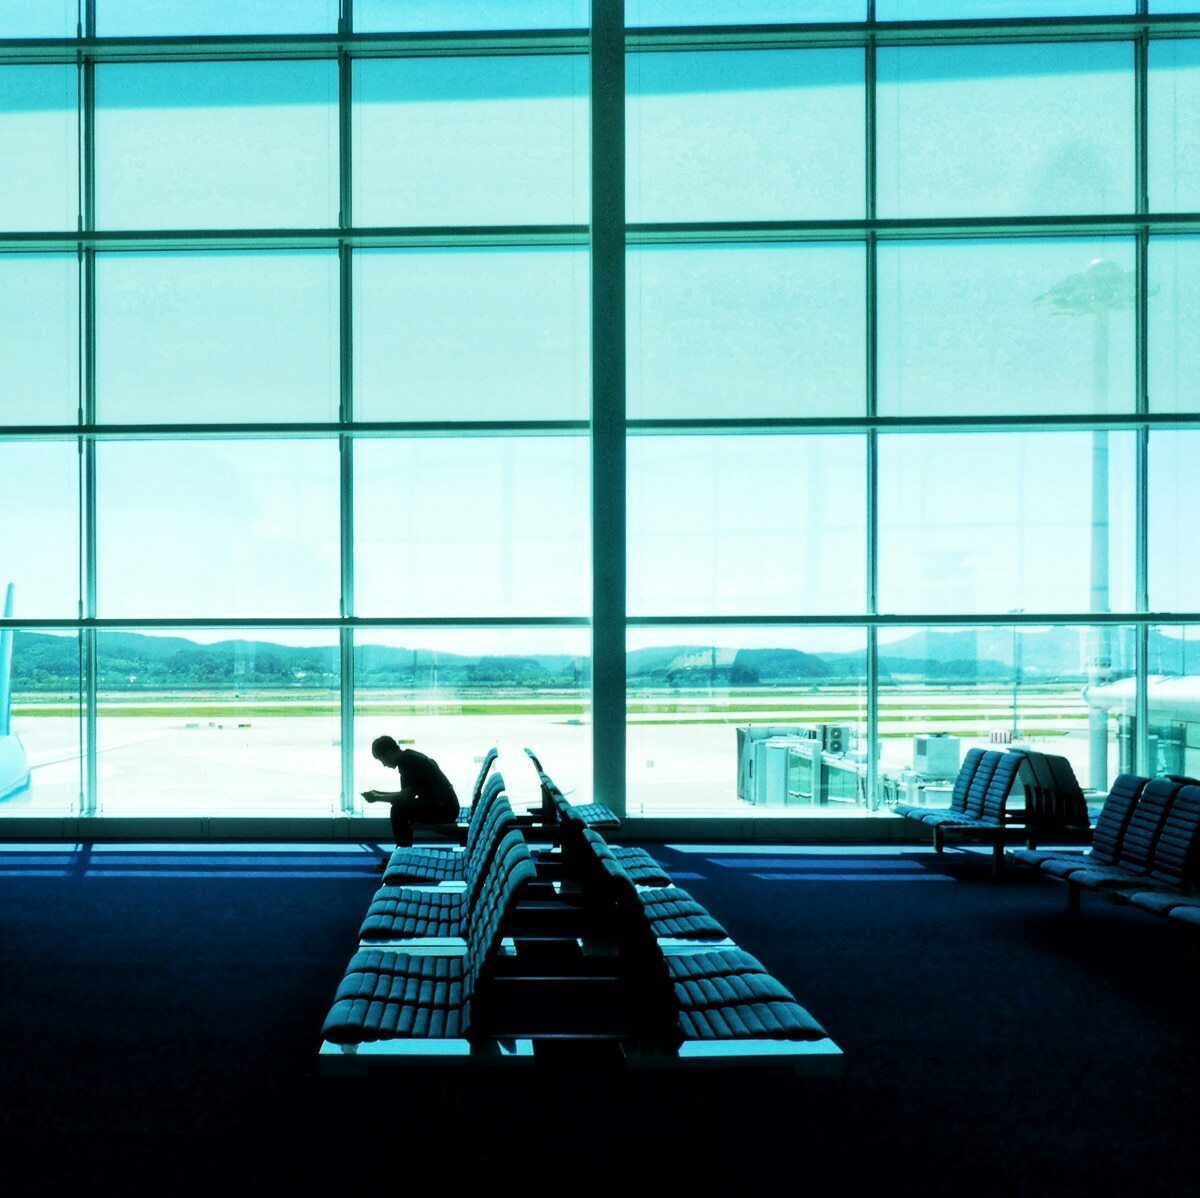 street photography airports 6